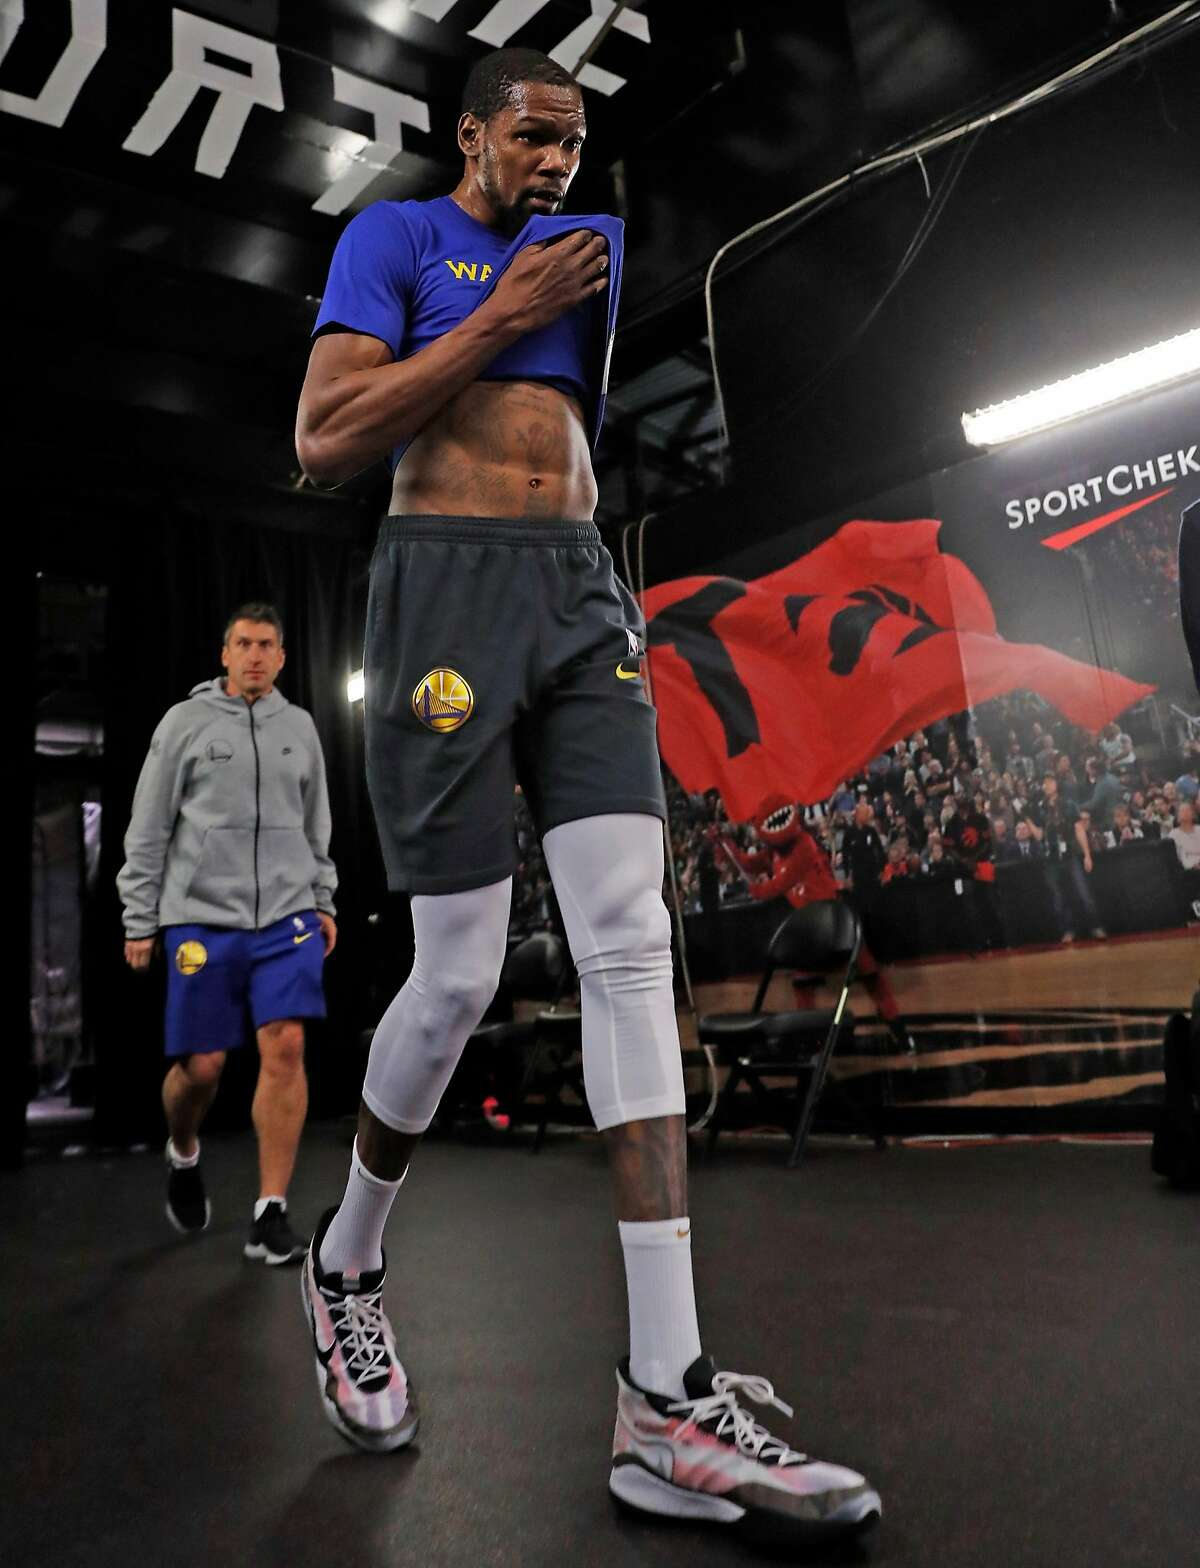 Golden State Warriors' Kevin Durant leaves the court after working out on an off day during NBA Finals at ScotiaBank Arena in Toronto, Ontario, Canada, on Thursday, May 31, 2019.